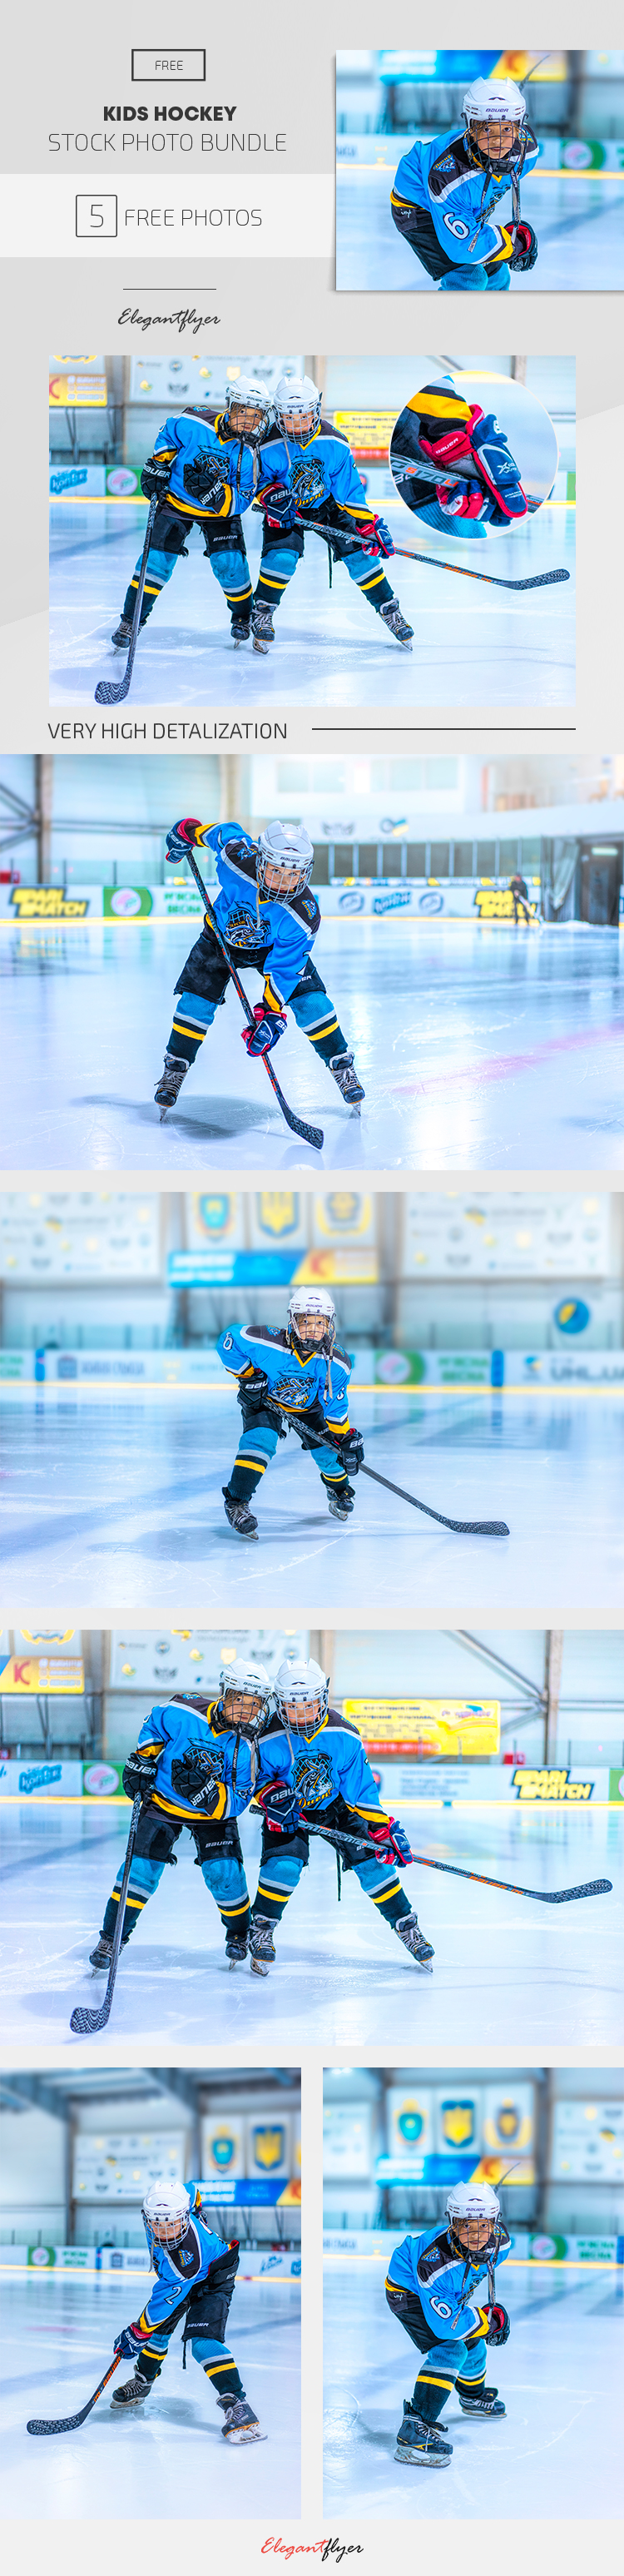 Kids Hockey – 5 Free Stock Photos Bundle